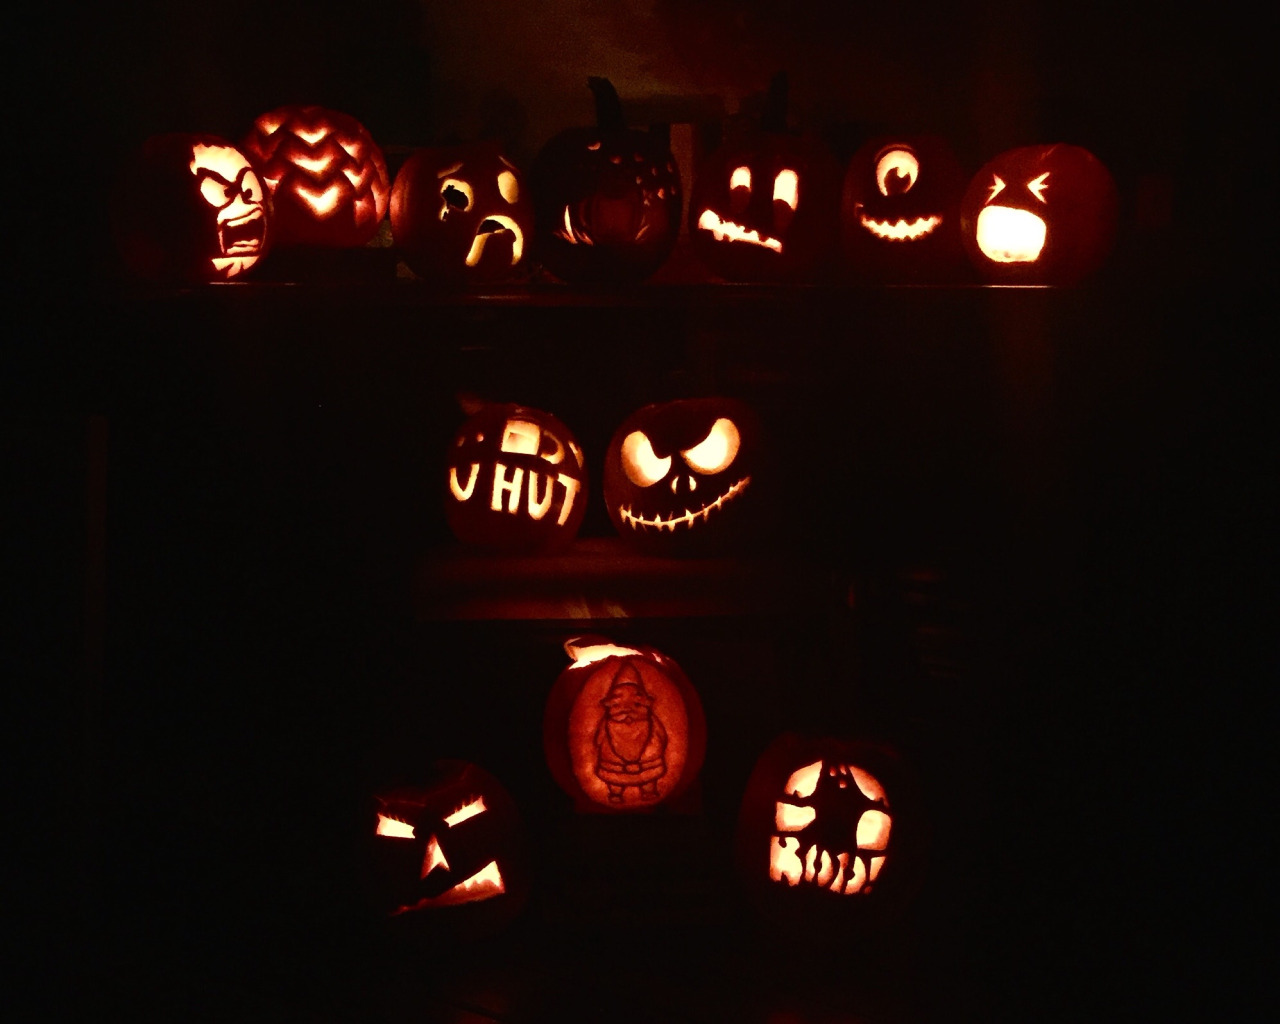 It may still be 80 degrees in Savannah, but fall festivities are in full swing!! I carved my first pumpkin ever last night… guess which one is mine!  (psst it's the Mike Wazowski)